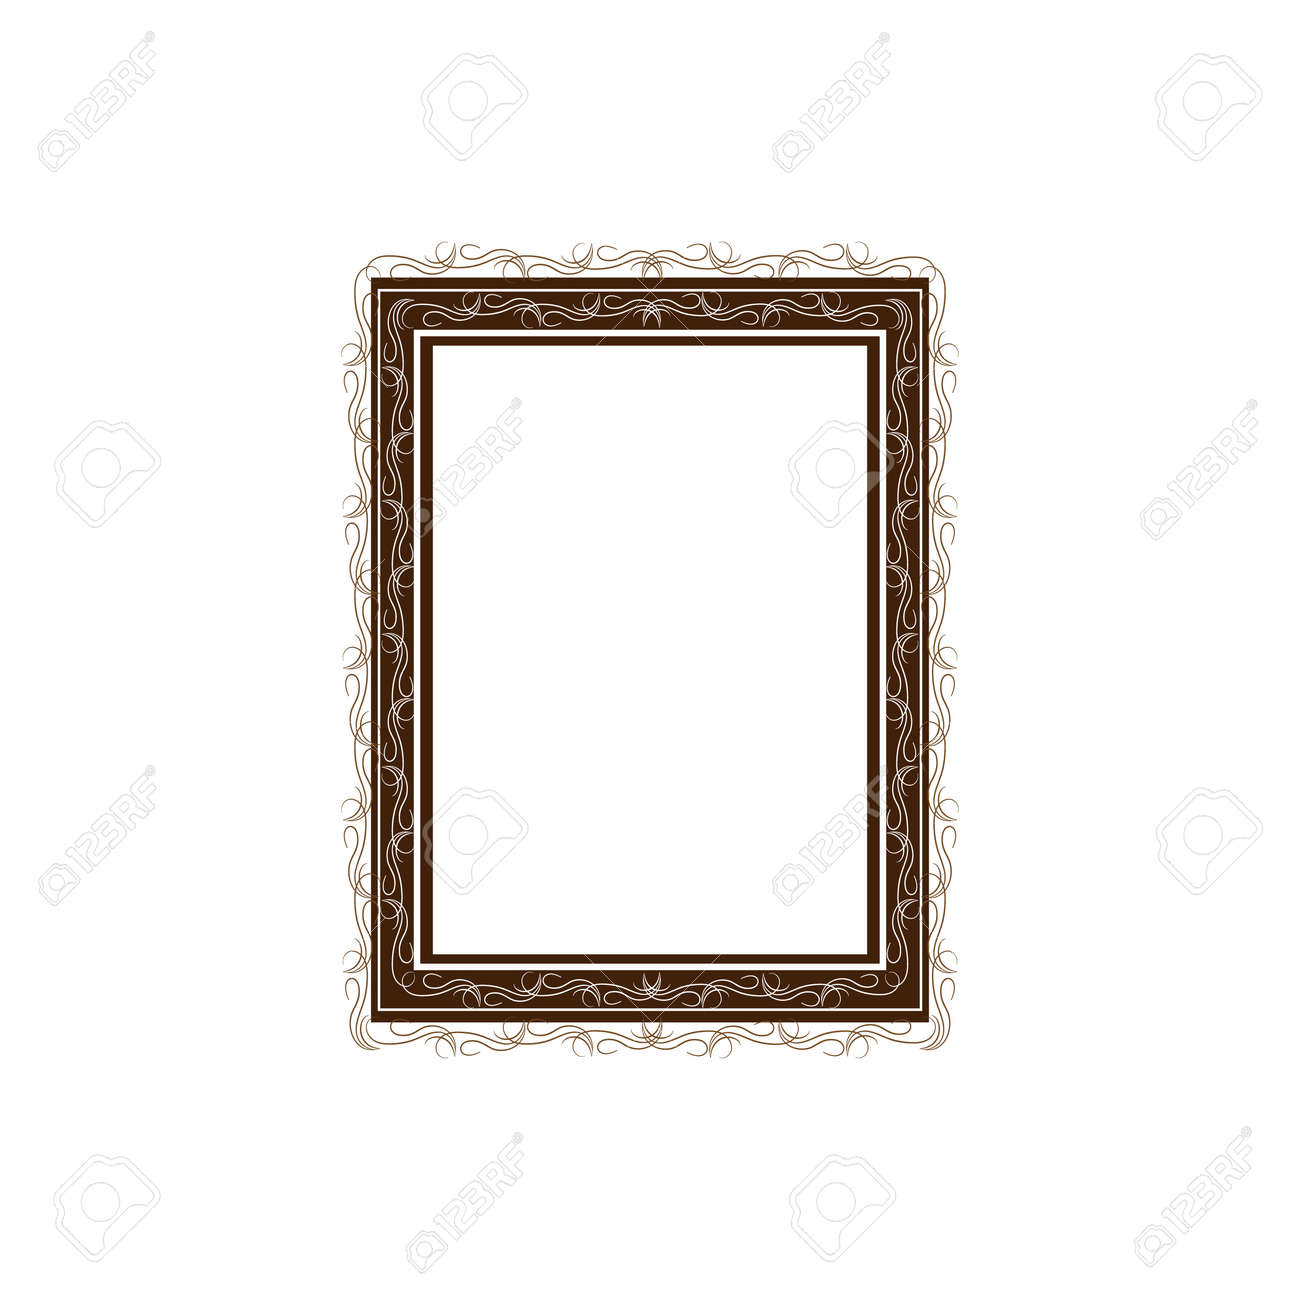 Frame with wavy line for pfoto. Vector. - 160002154